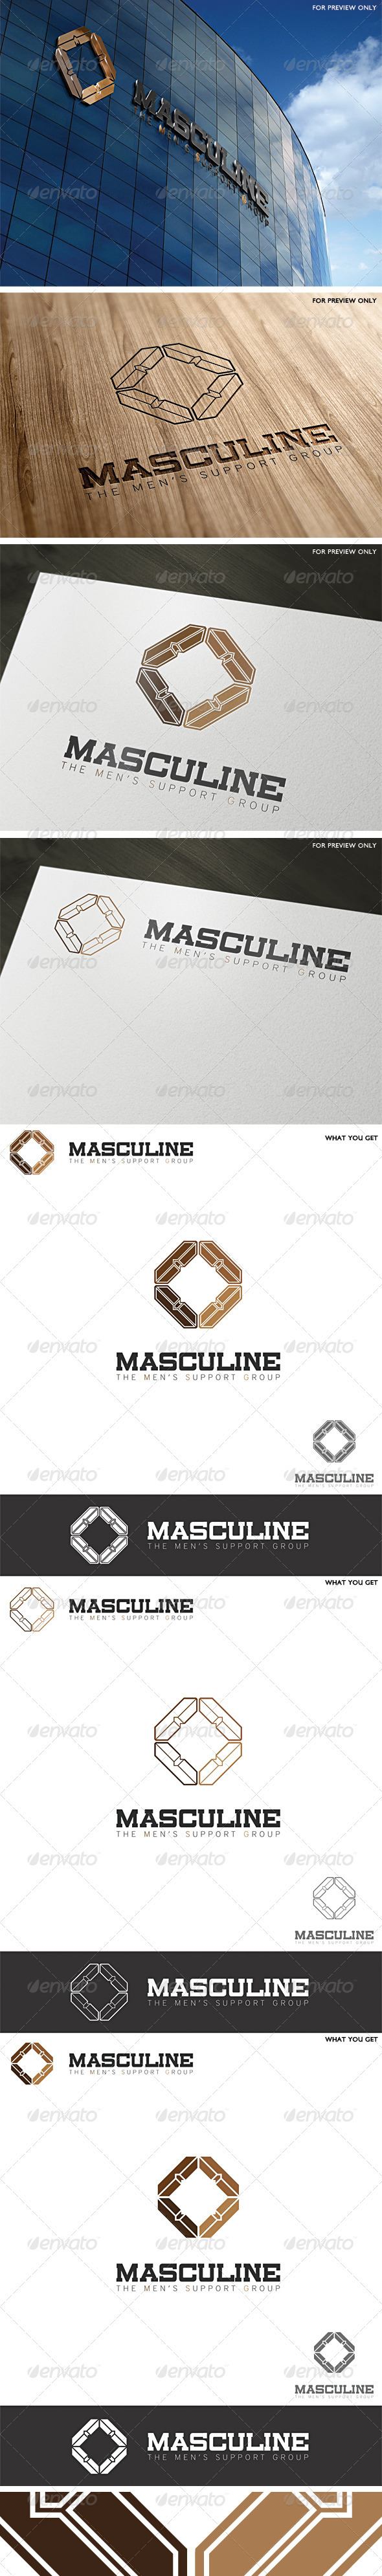 Masculine Men's Group Logo Template - Vector Abstract